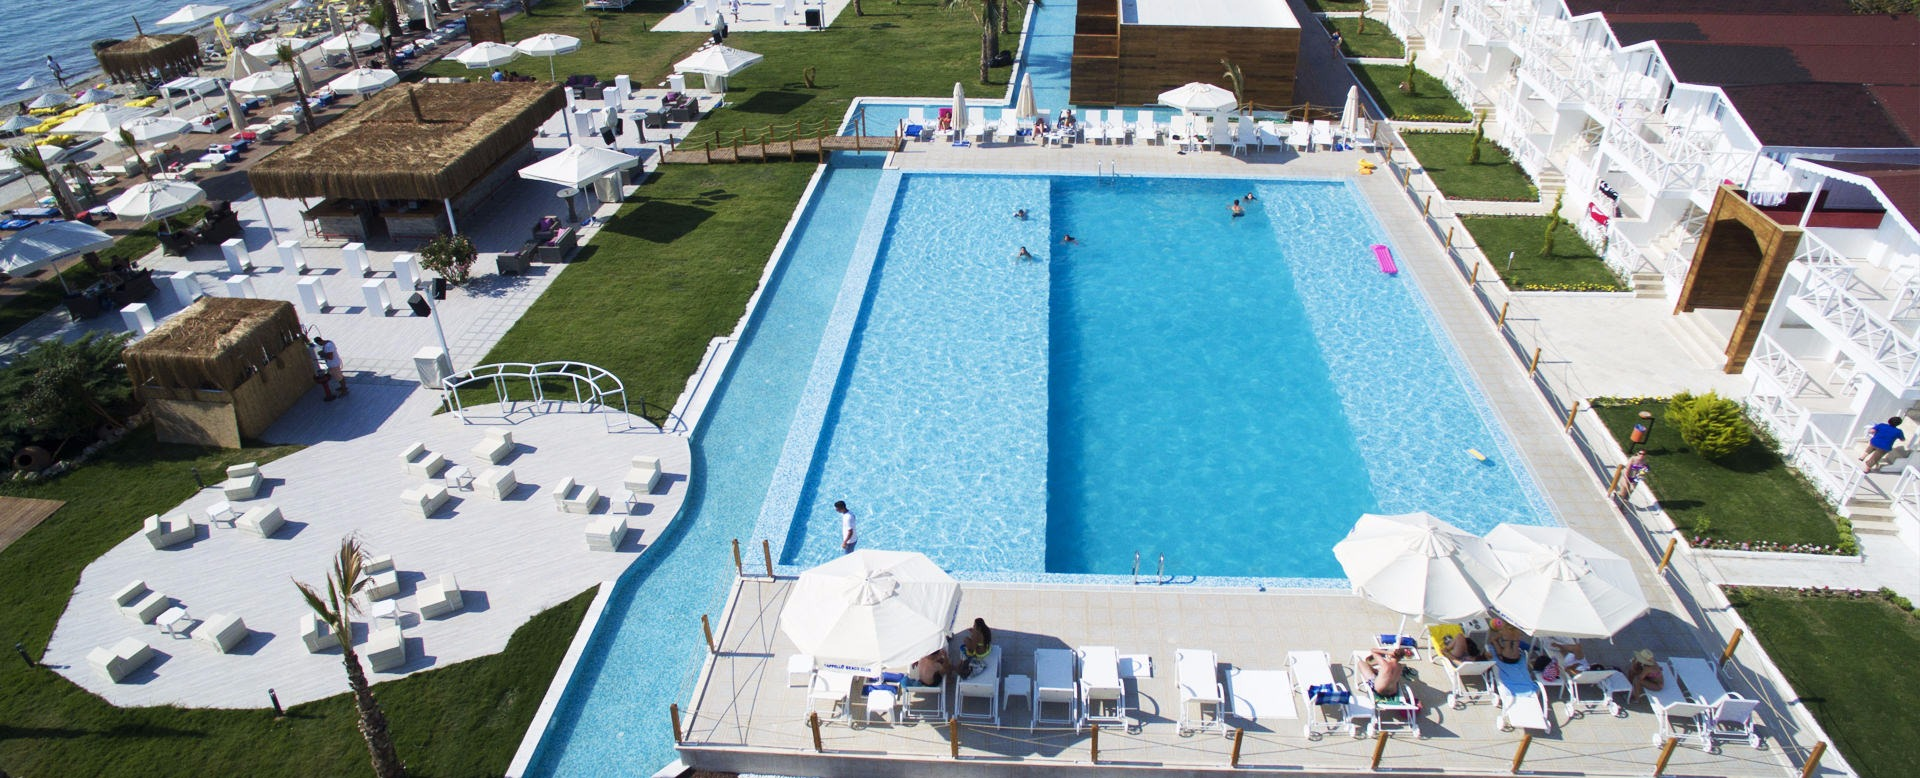 Risus Aqua Beach Resort44050